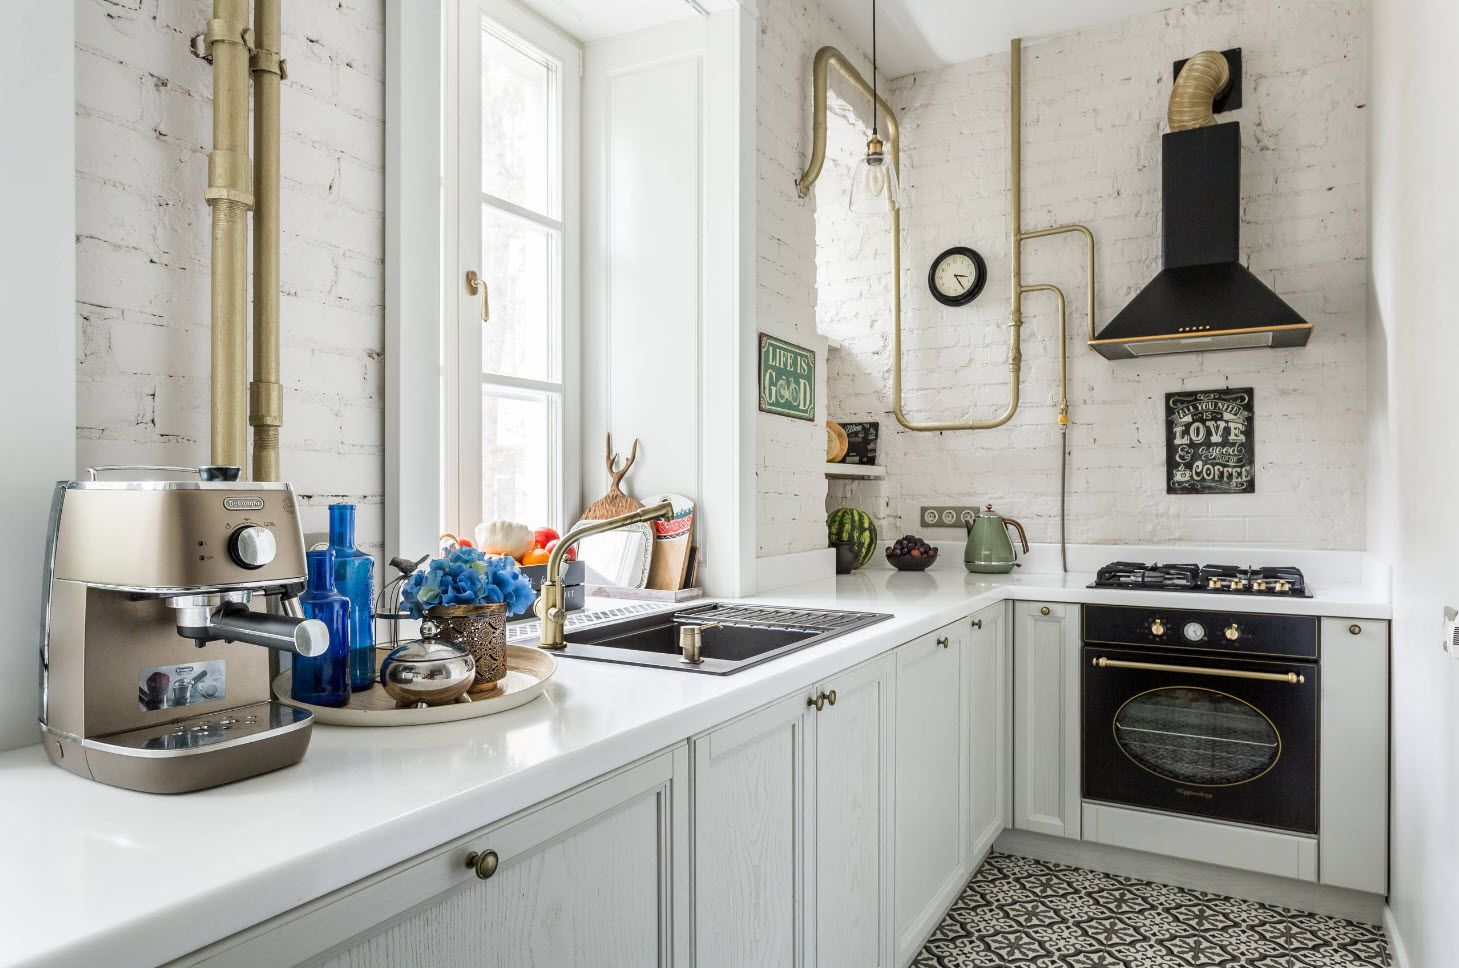 75 Square Feet Kitchen Interior Decoration Advice and Design Ideas. Introducing a little bit of Steampunk in white